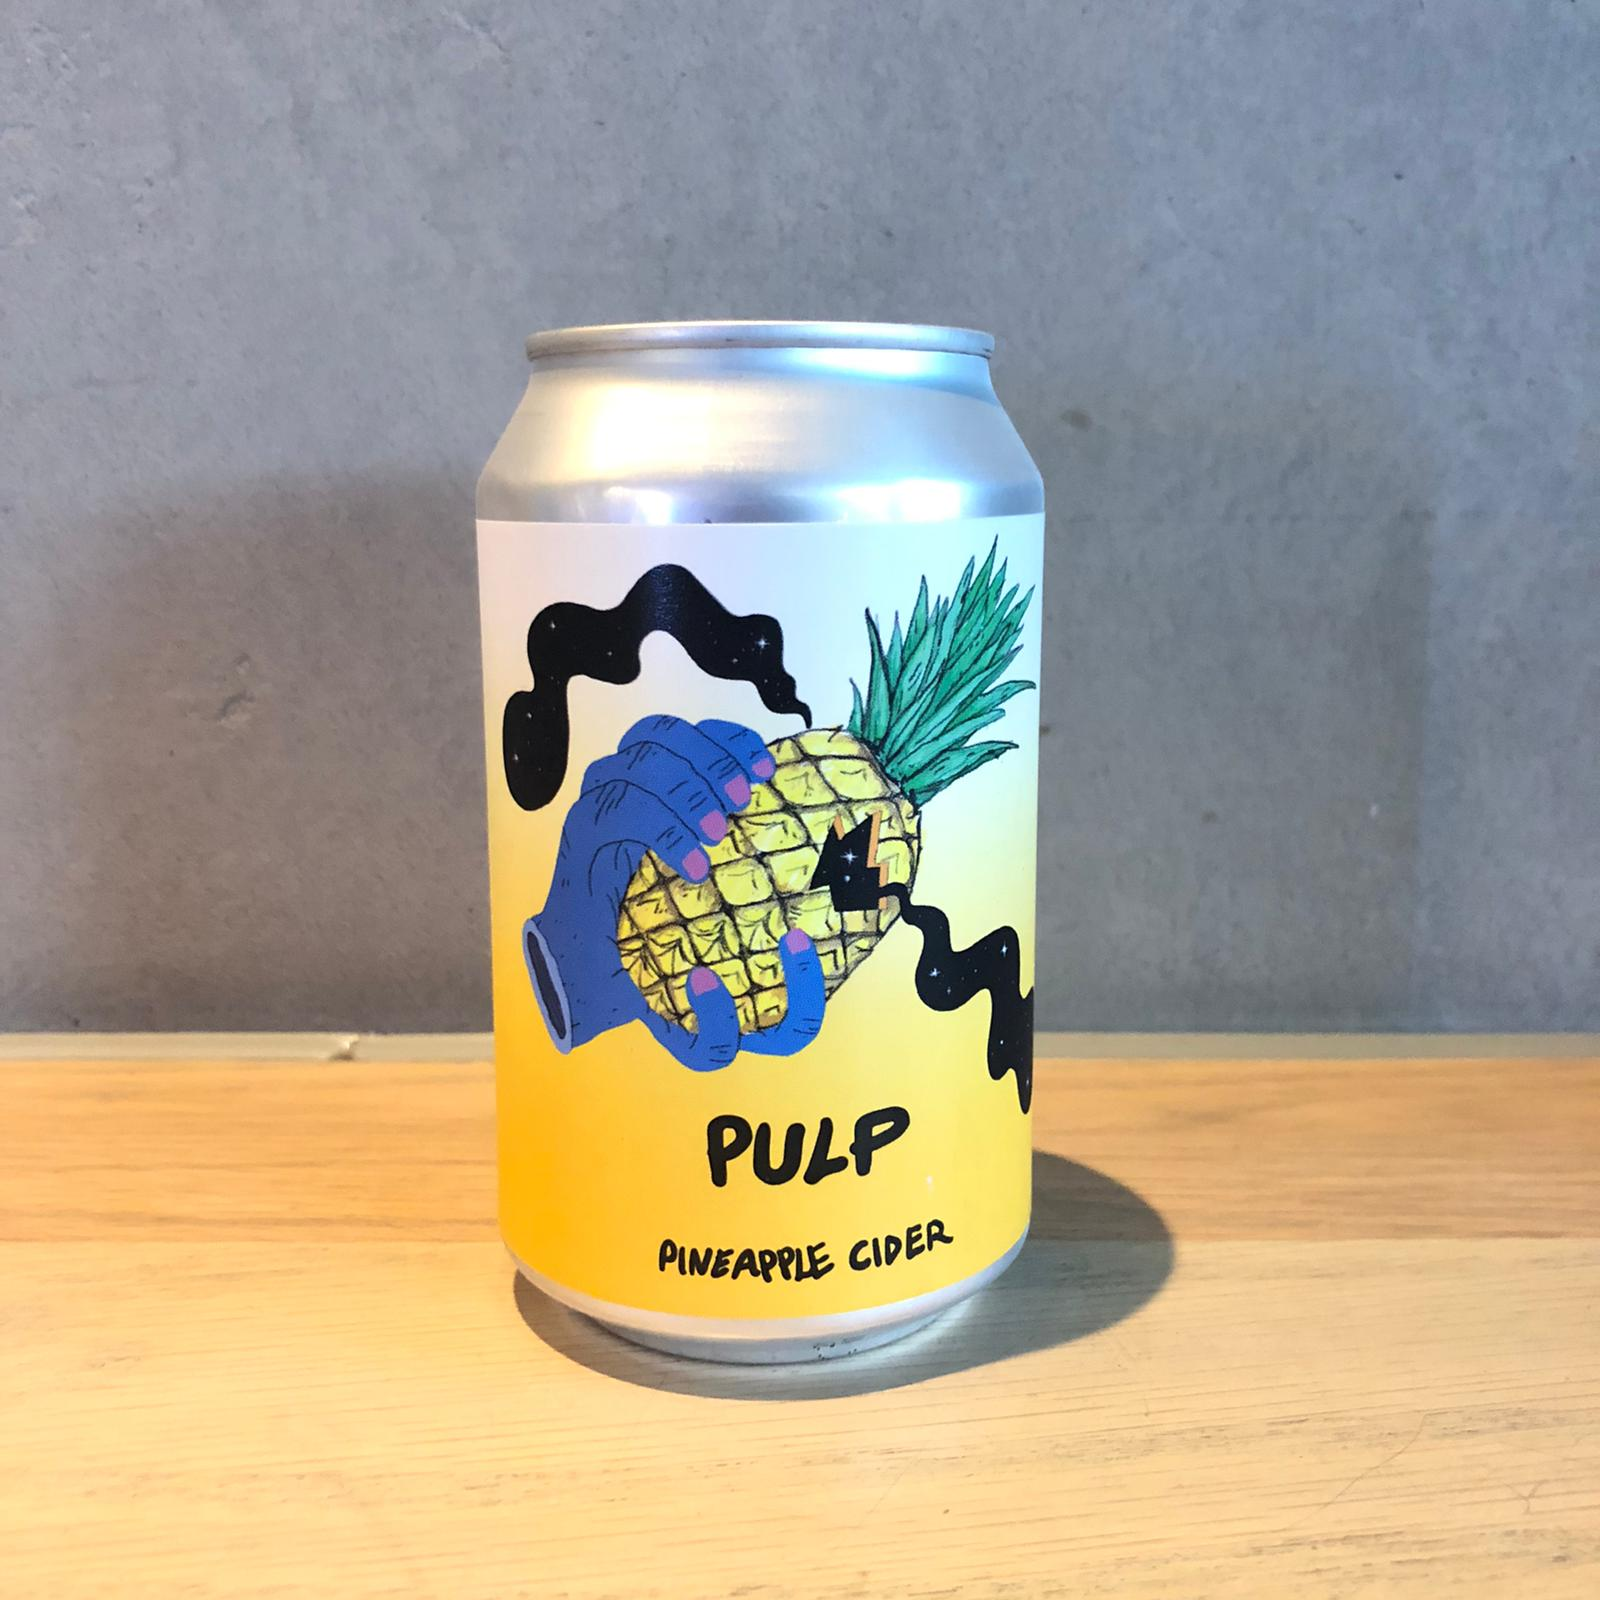 Lervig Pulp Pineapple cider 4.7% 330ml